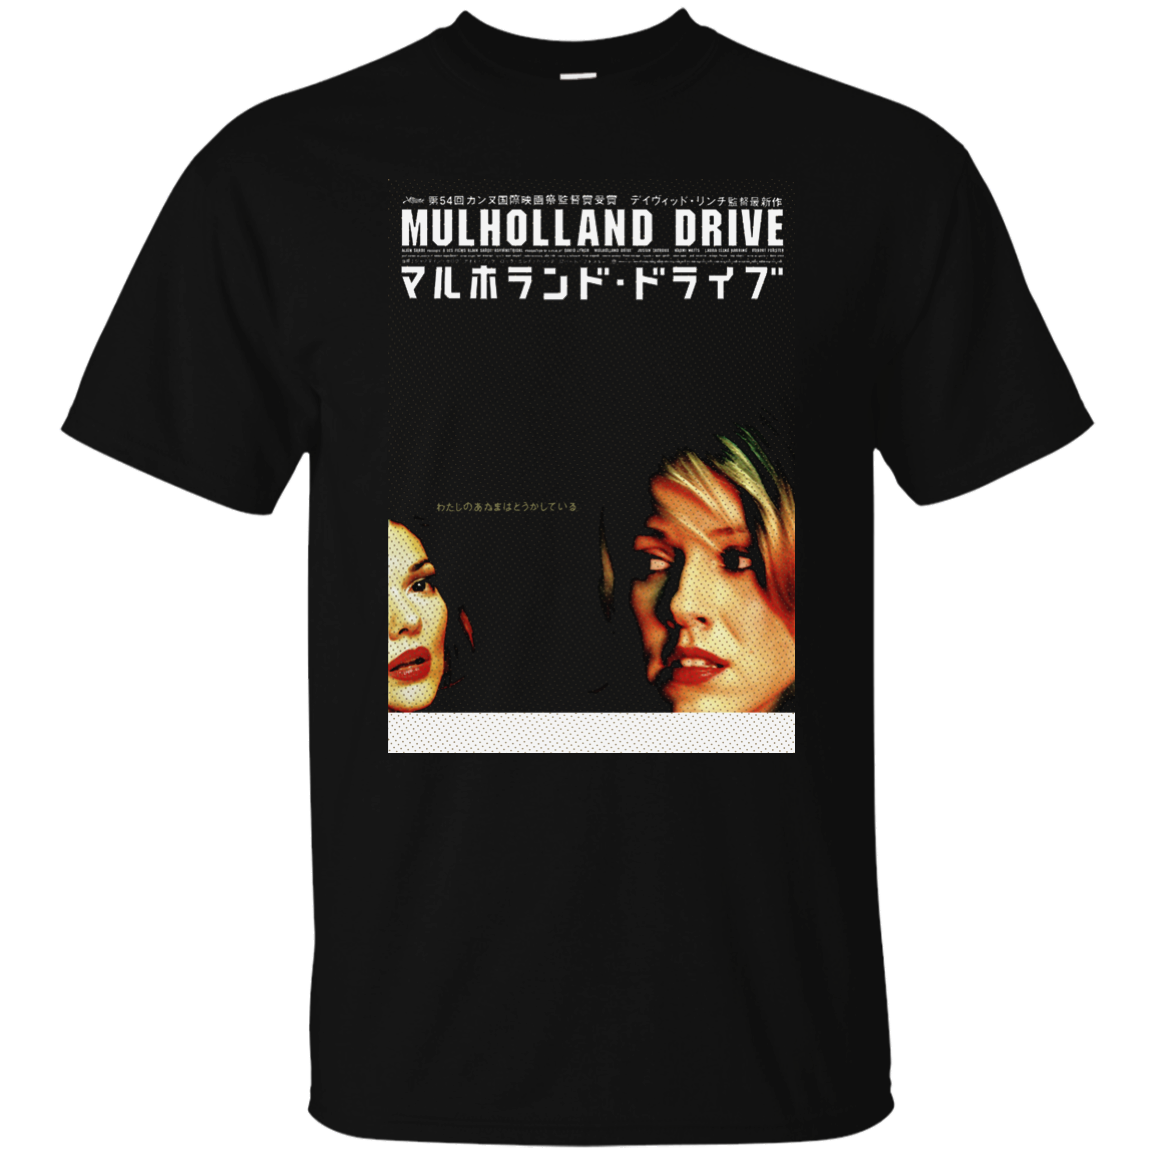 Mulholland Drive, Japanese, David Lynch, Movie, Thriller, Naomi Watts, Laura Har Summer  ...